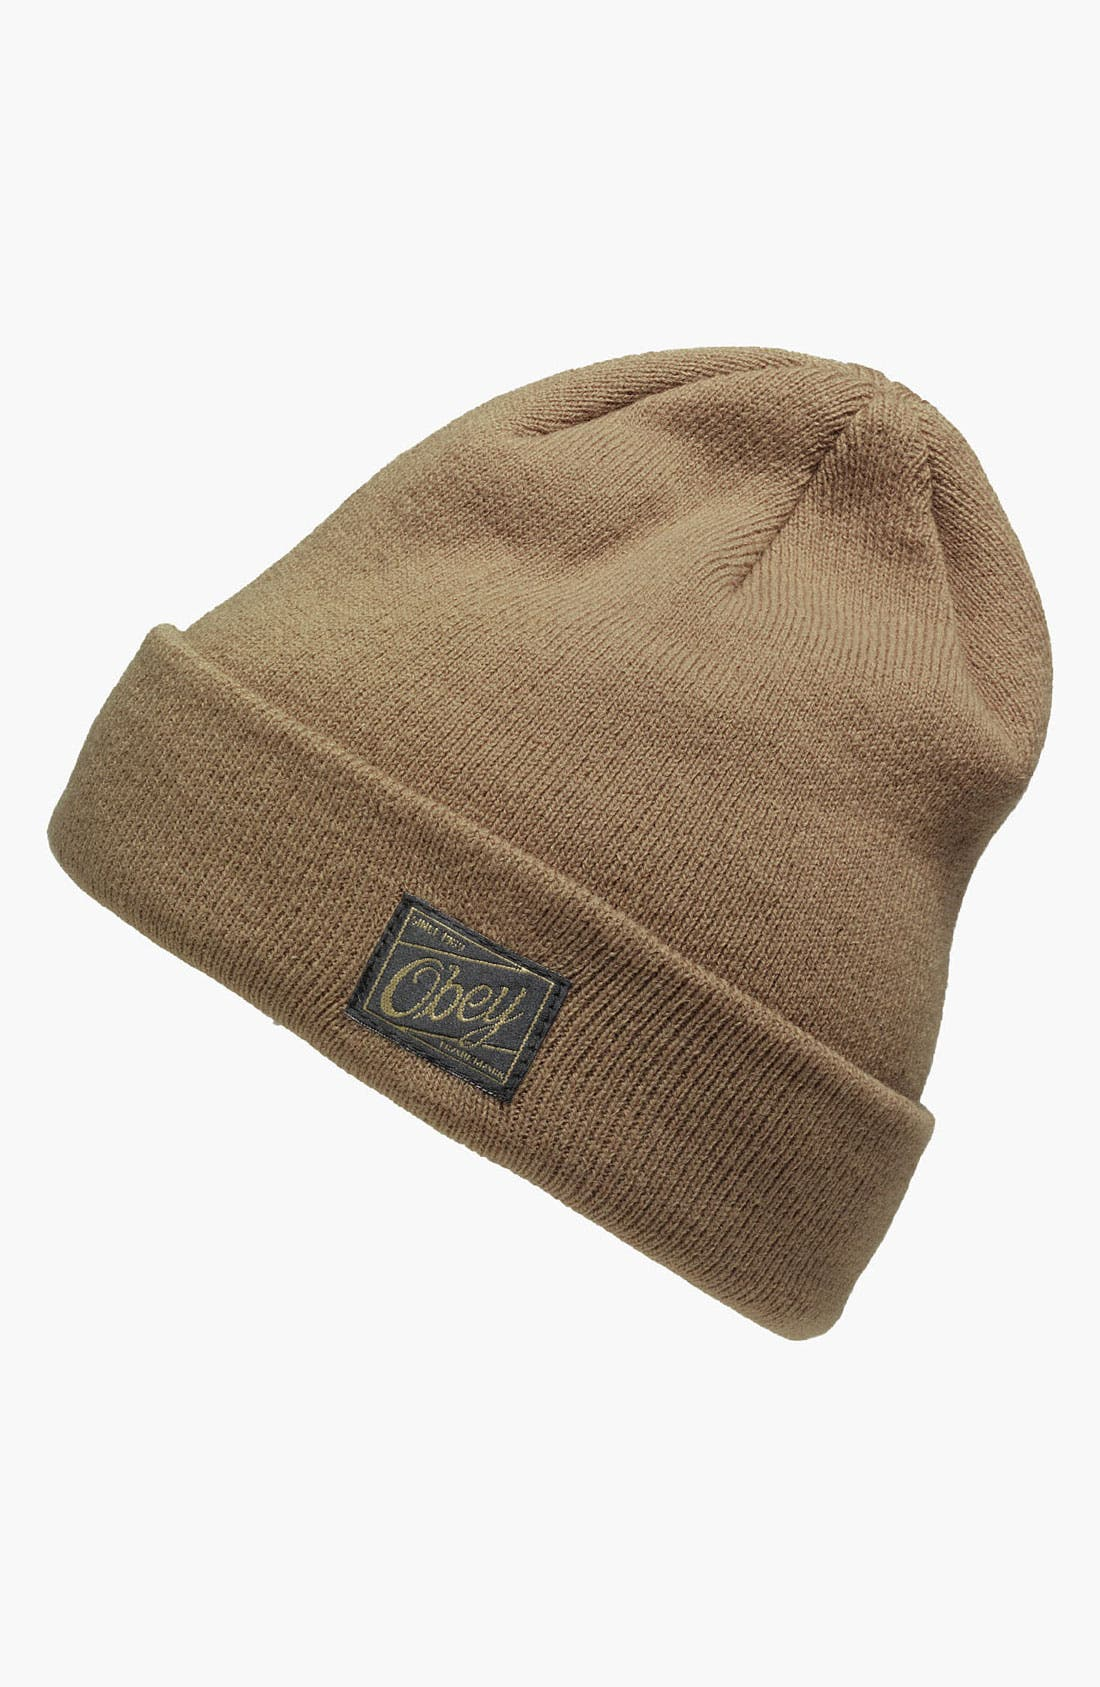 Main Image - Obey 'Jobber' Knit Cap